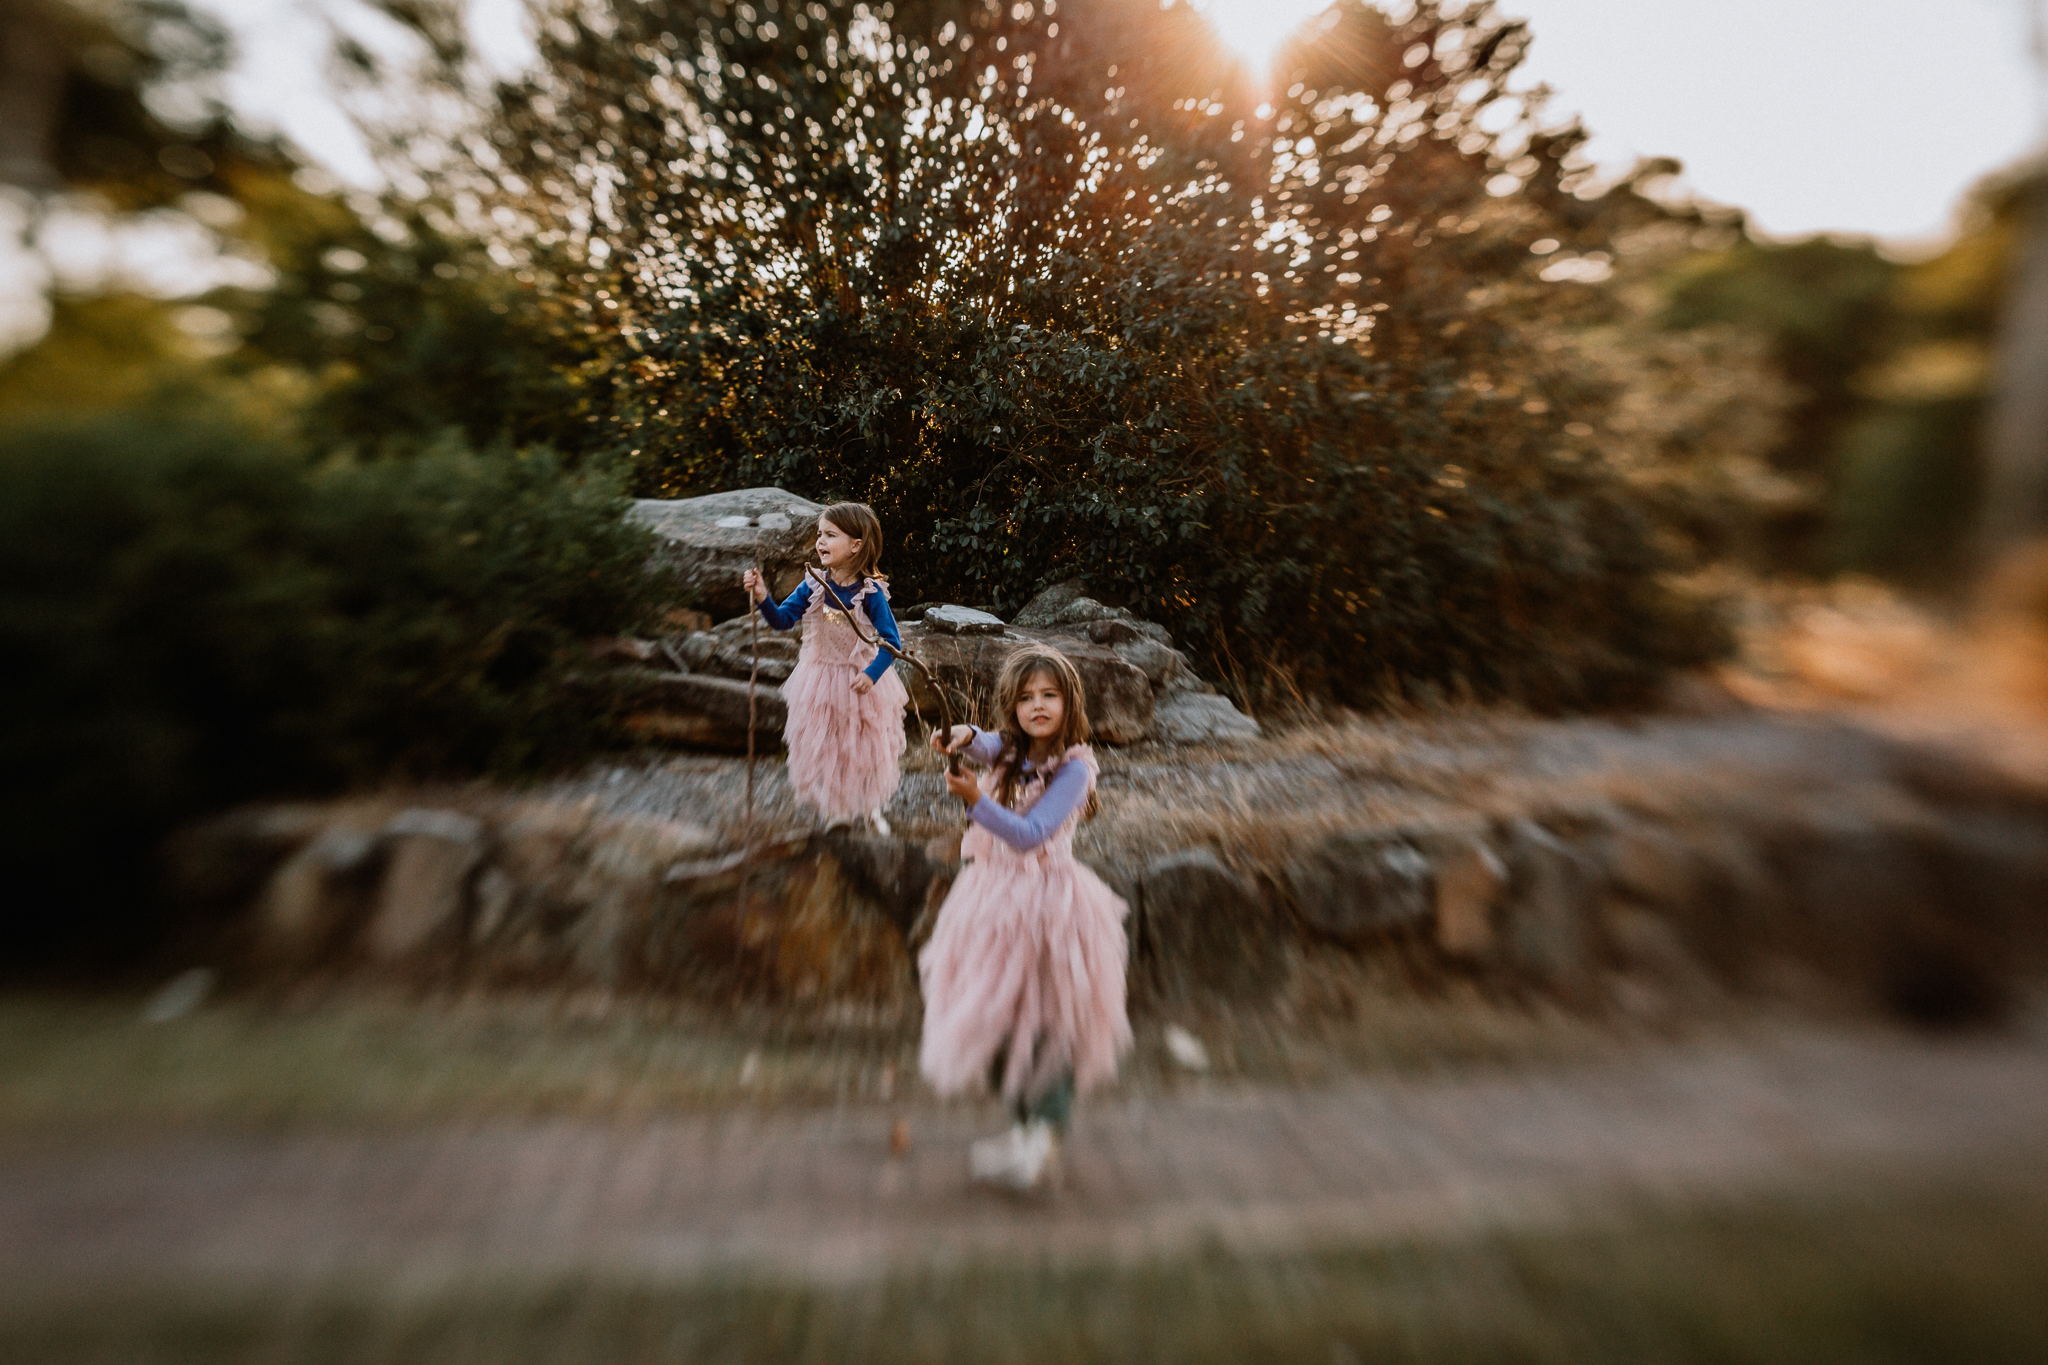 Haweksbury family lifestyle photography, kylie purtell photos and film-5.jpg